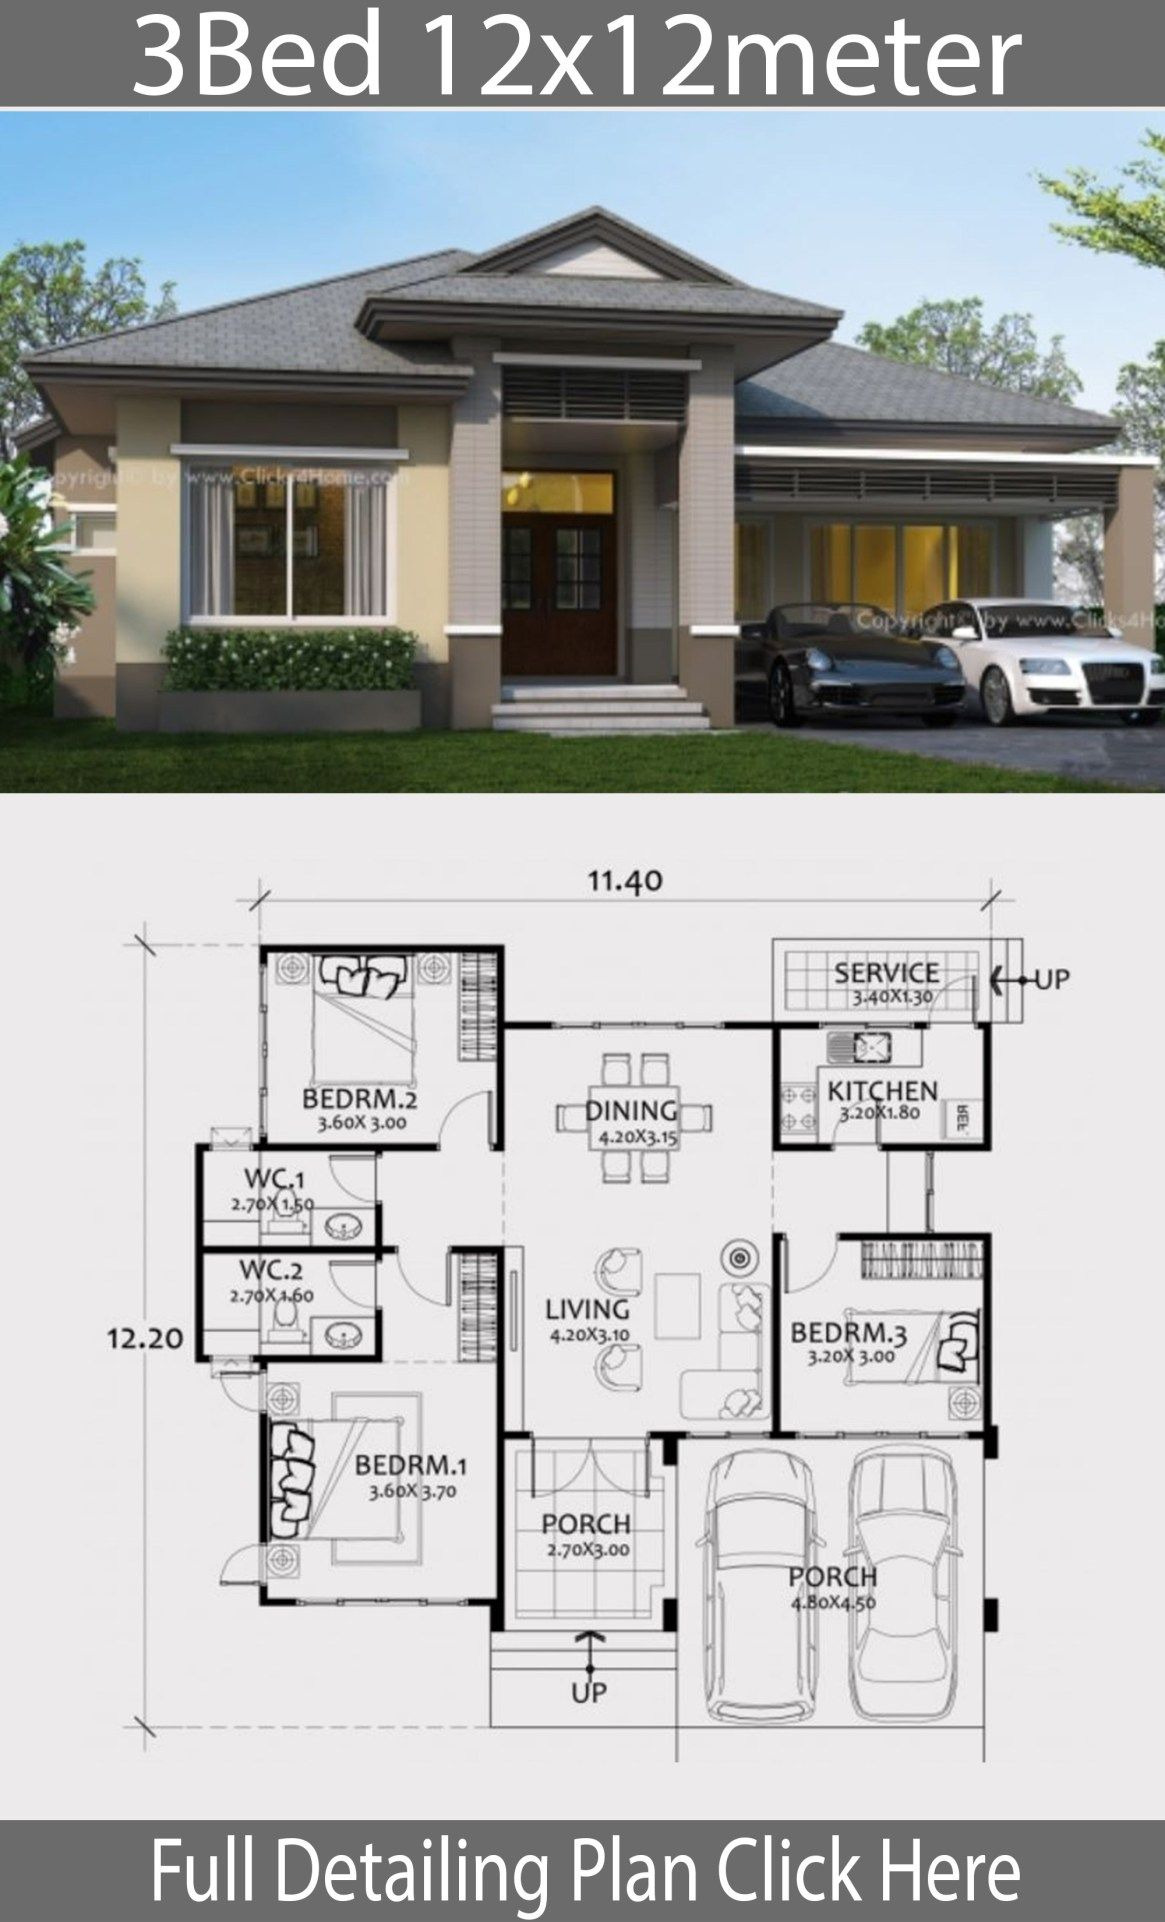 Modern Houses Plans with Photos Lovely Home Design Plan 12x12m with 3 Bedrooms